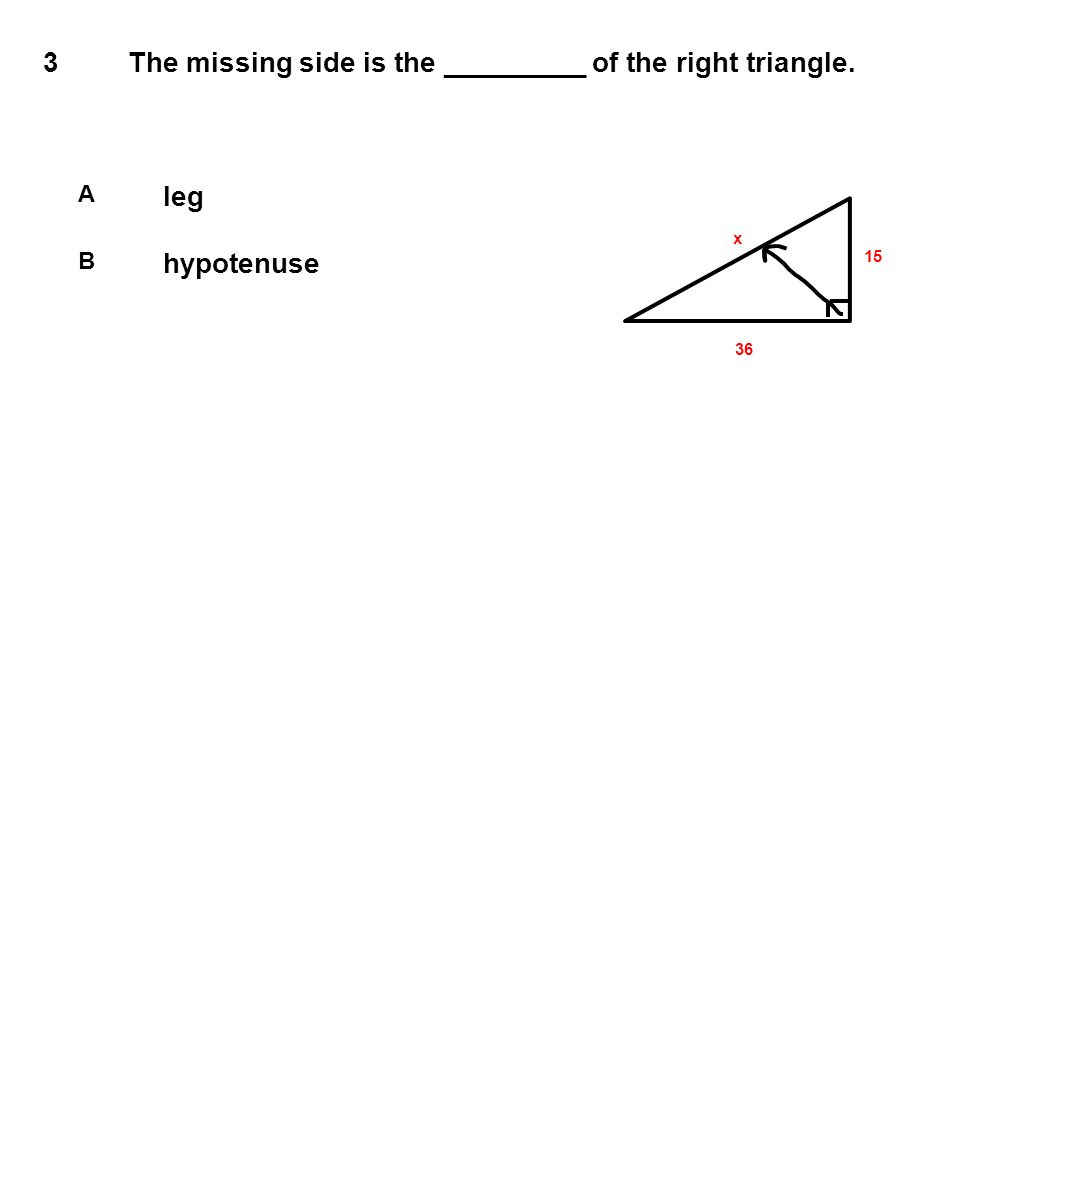 The Missing Side Is The ______ Of The Right Triangle